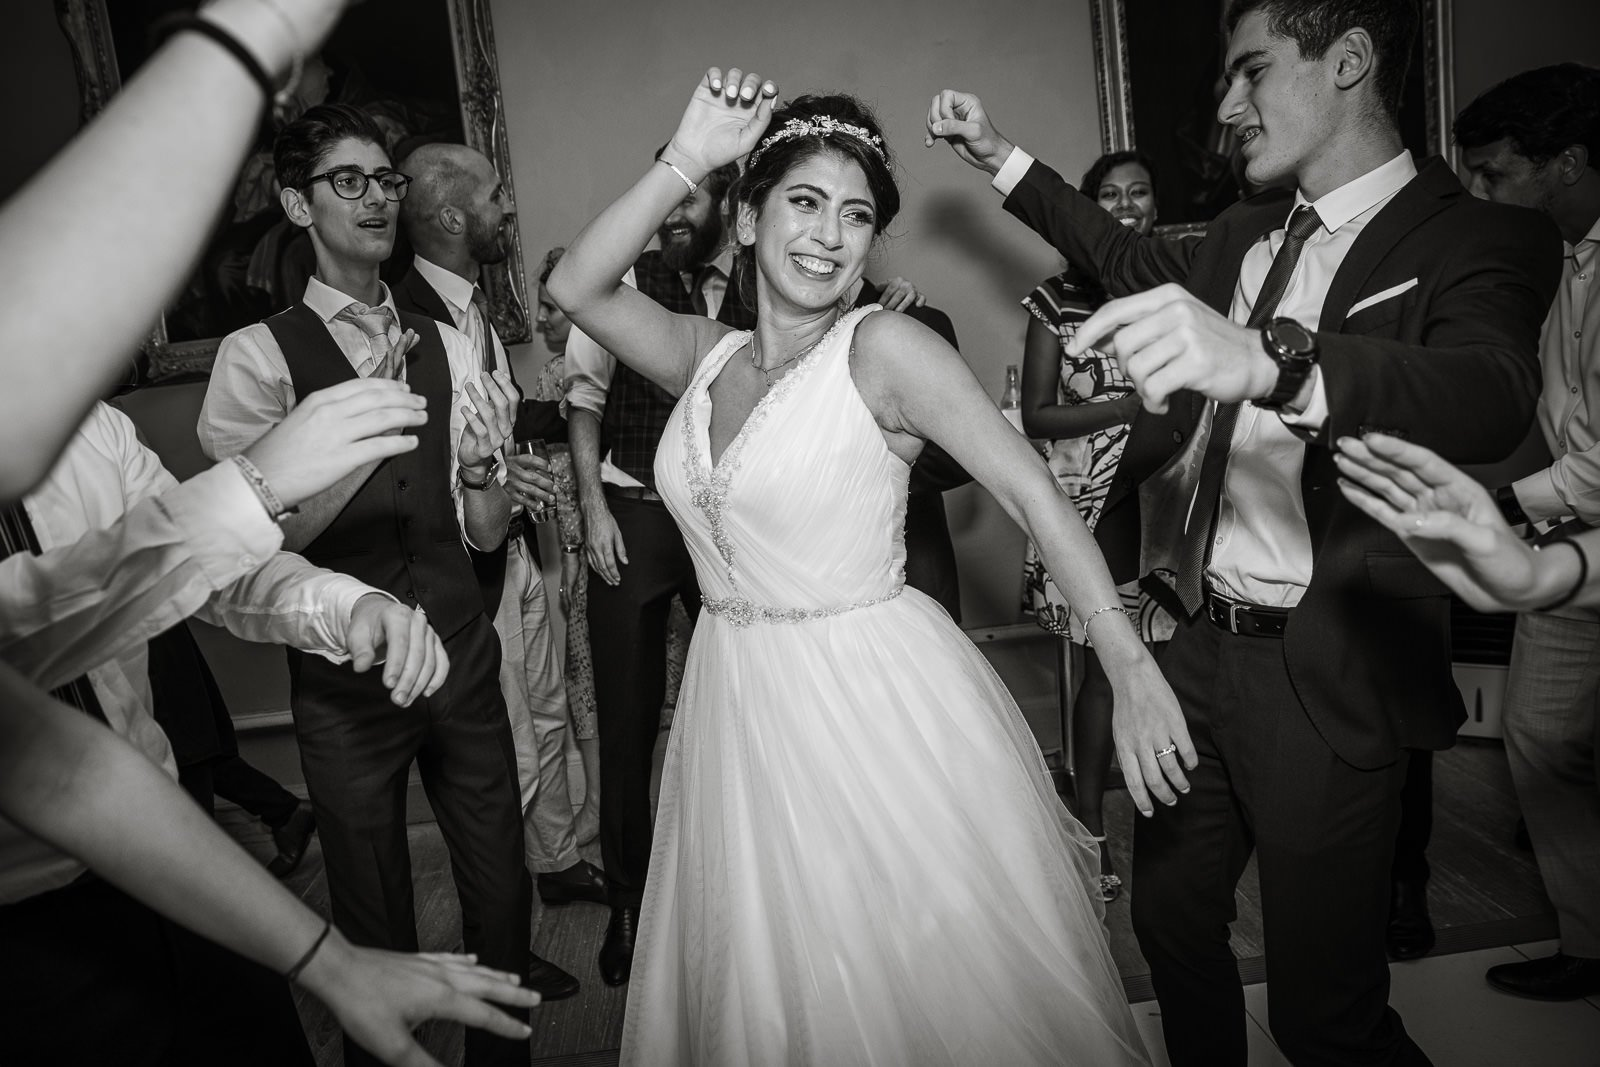 Bride smiling and dancing with lots of hands clapping